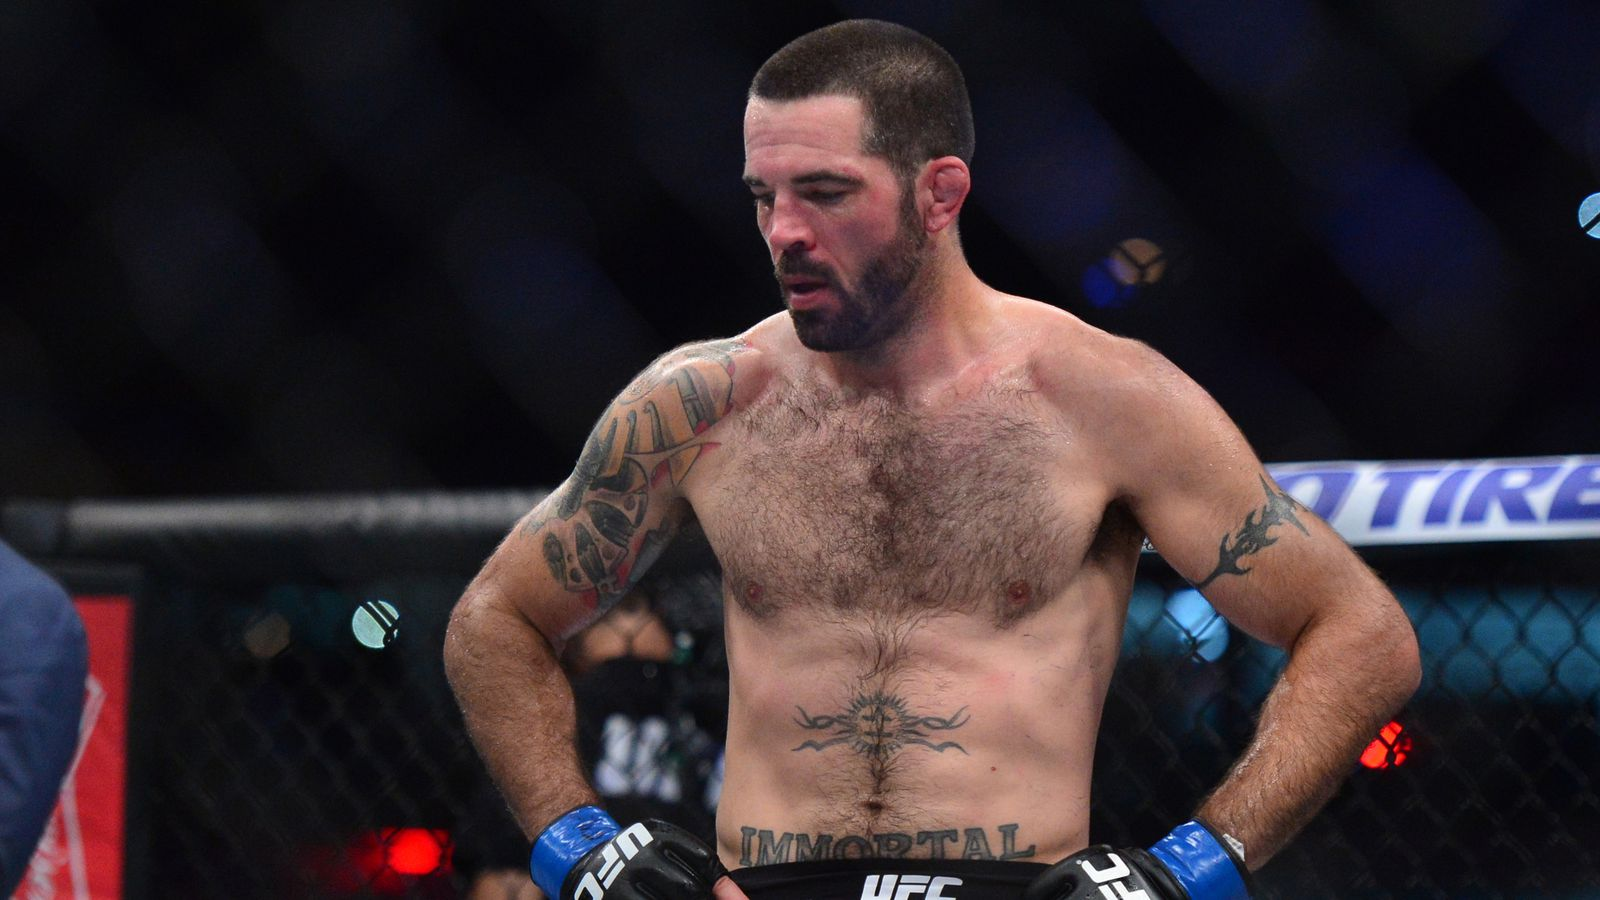 Matt Brown reveals having suicidal thoughts after loss: 'I probably felt like Ronda Rousey' - Bloody Elbow